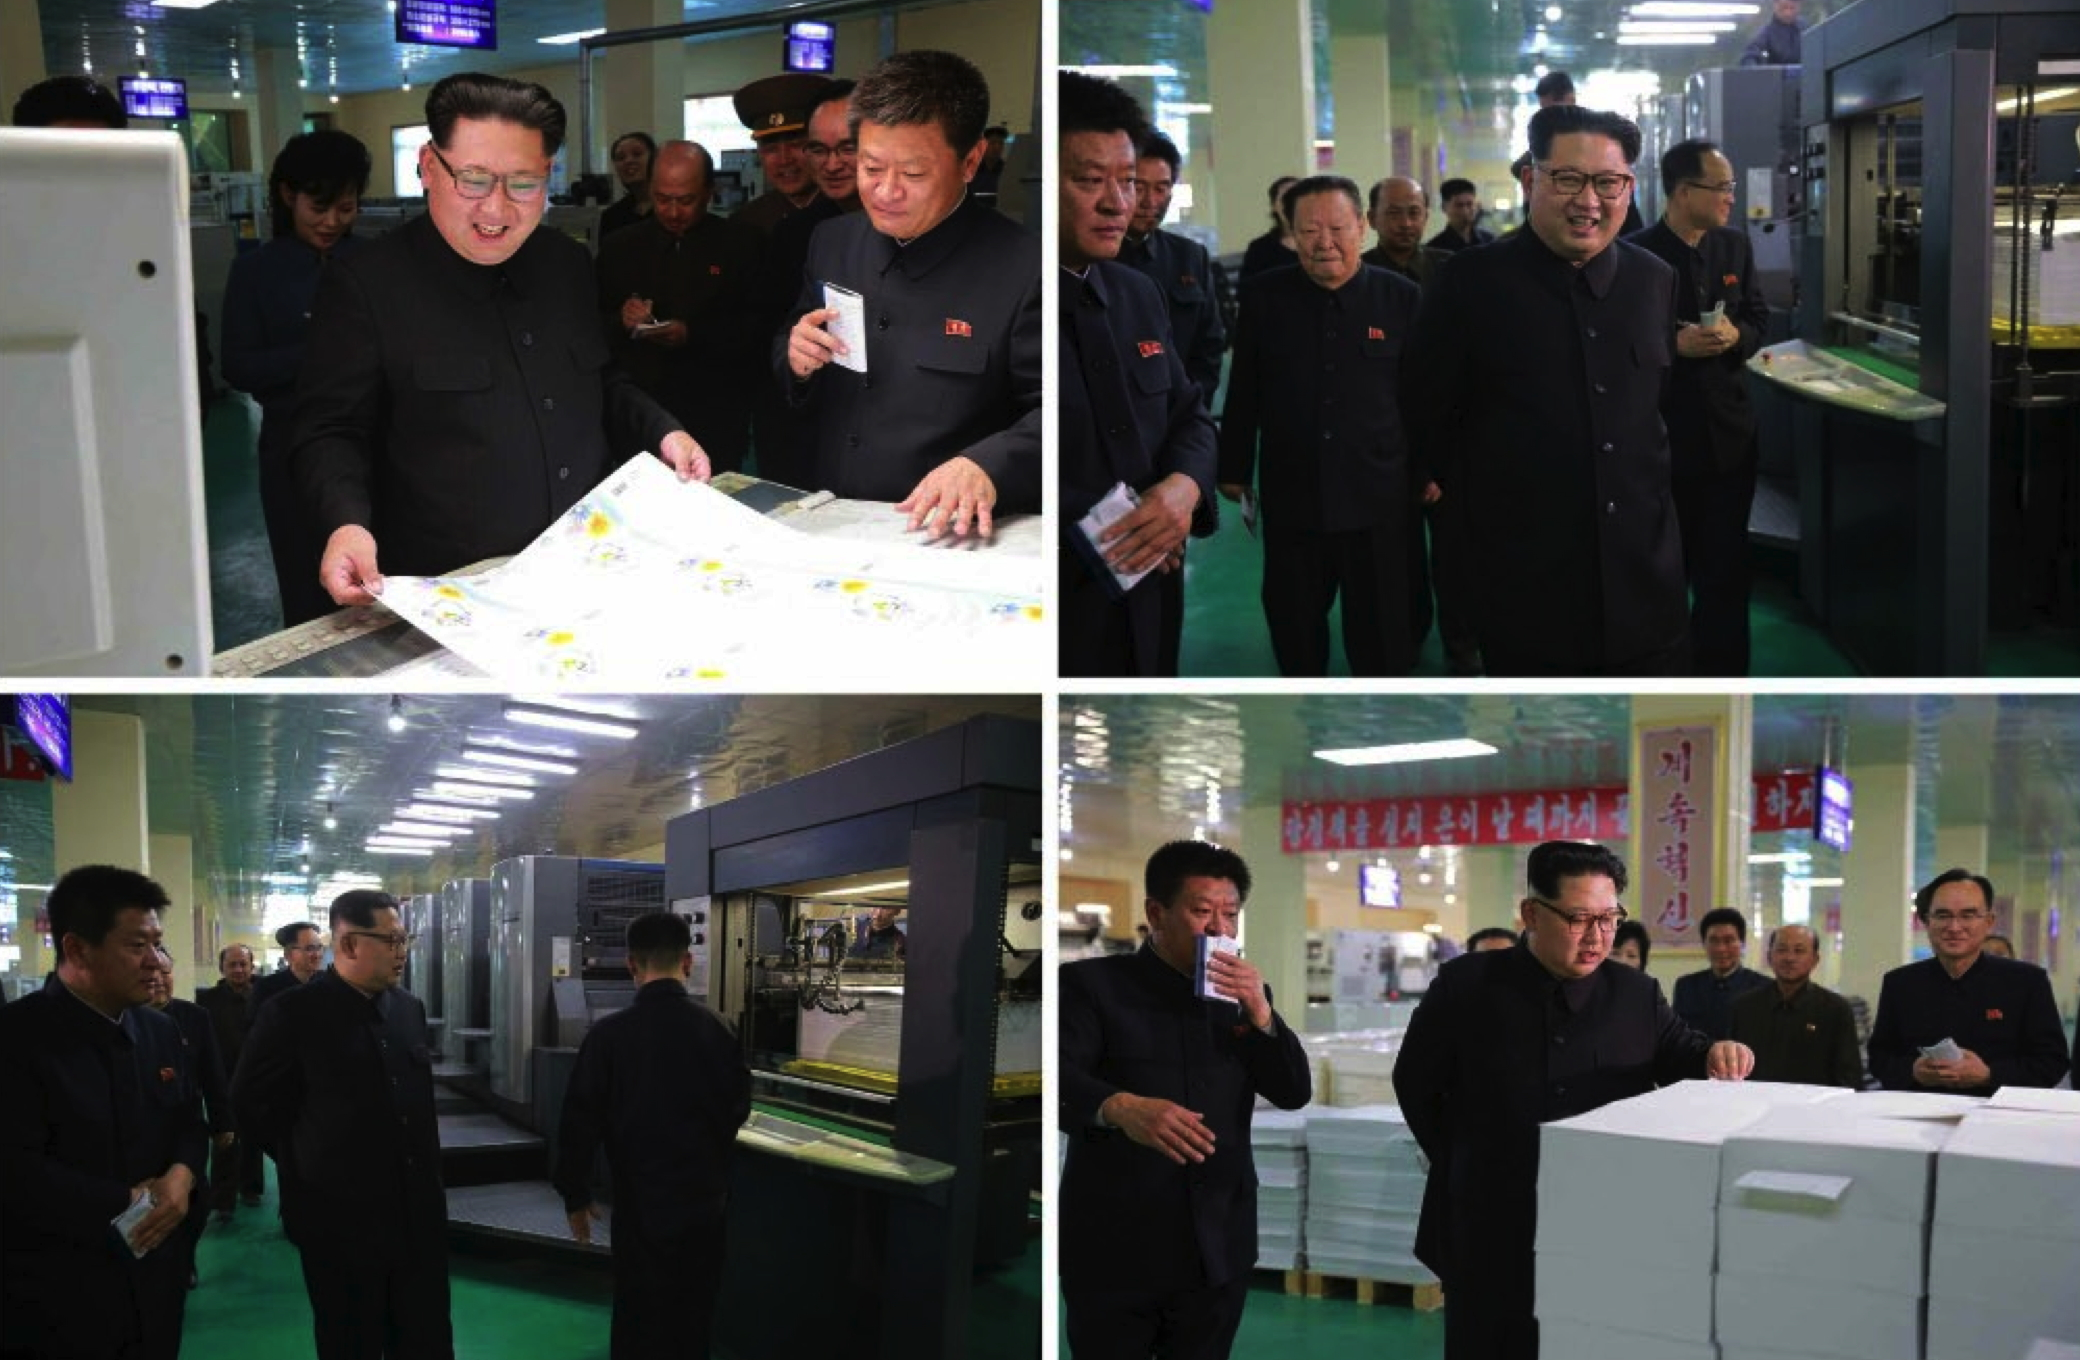 Kim Jong Un is briefed about production at the Mindulle Notebook Factory (Photos: Rodong Sinmun-KCNA).